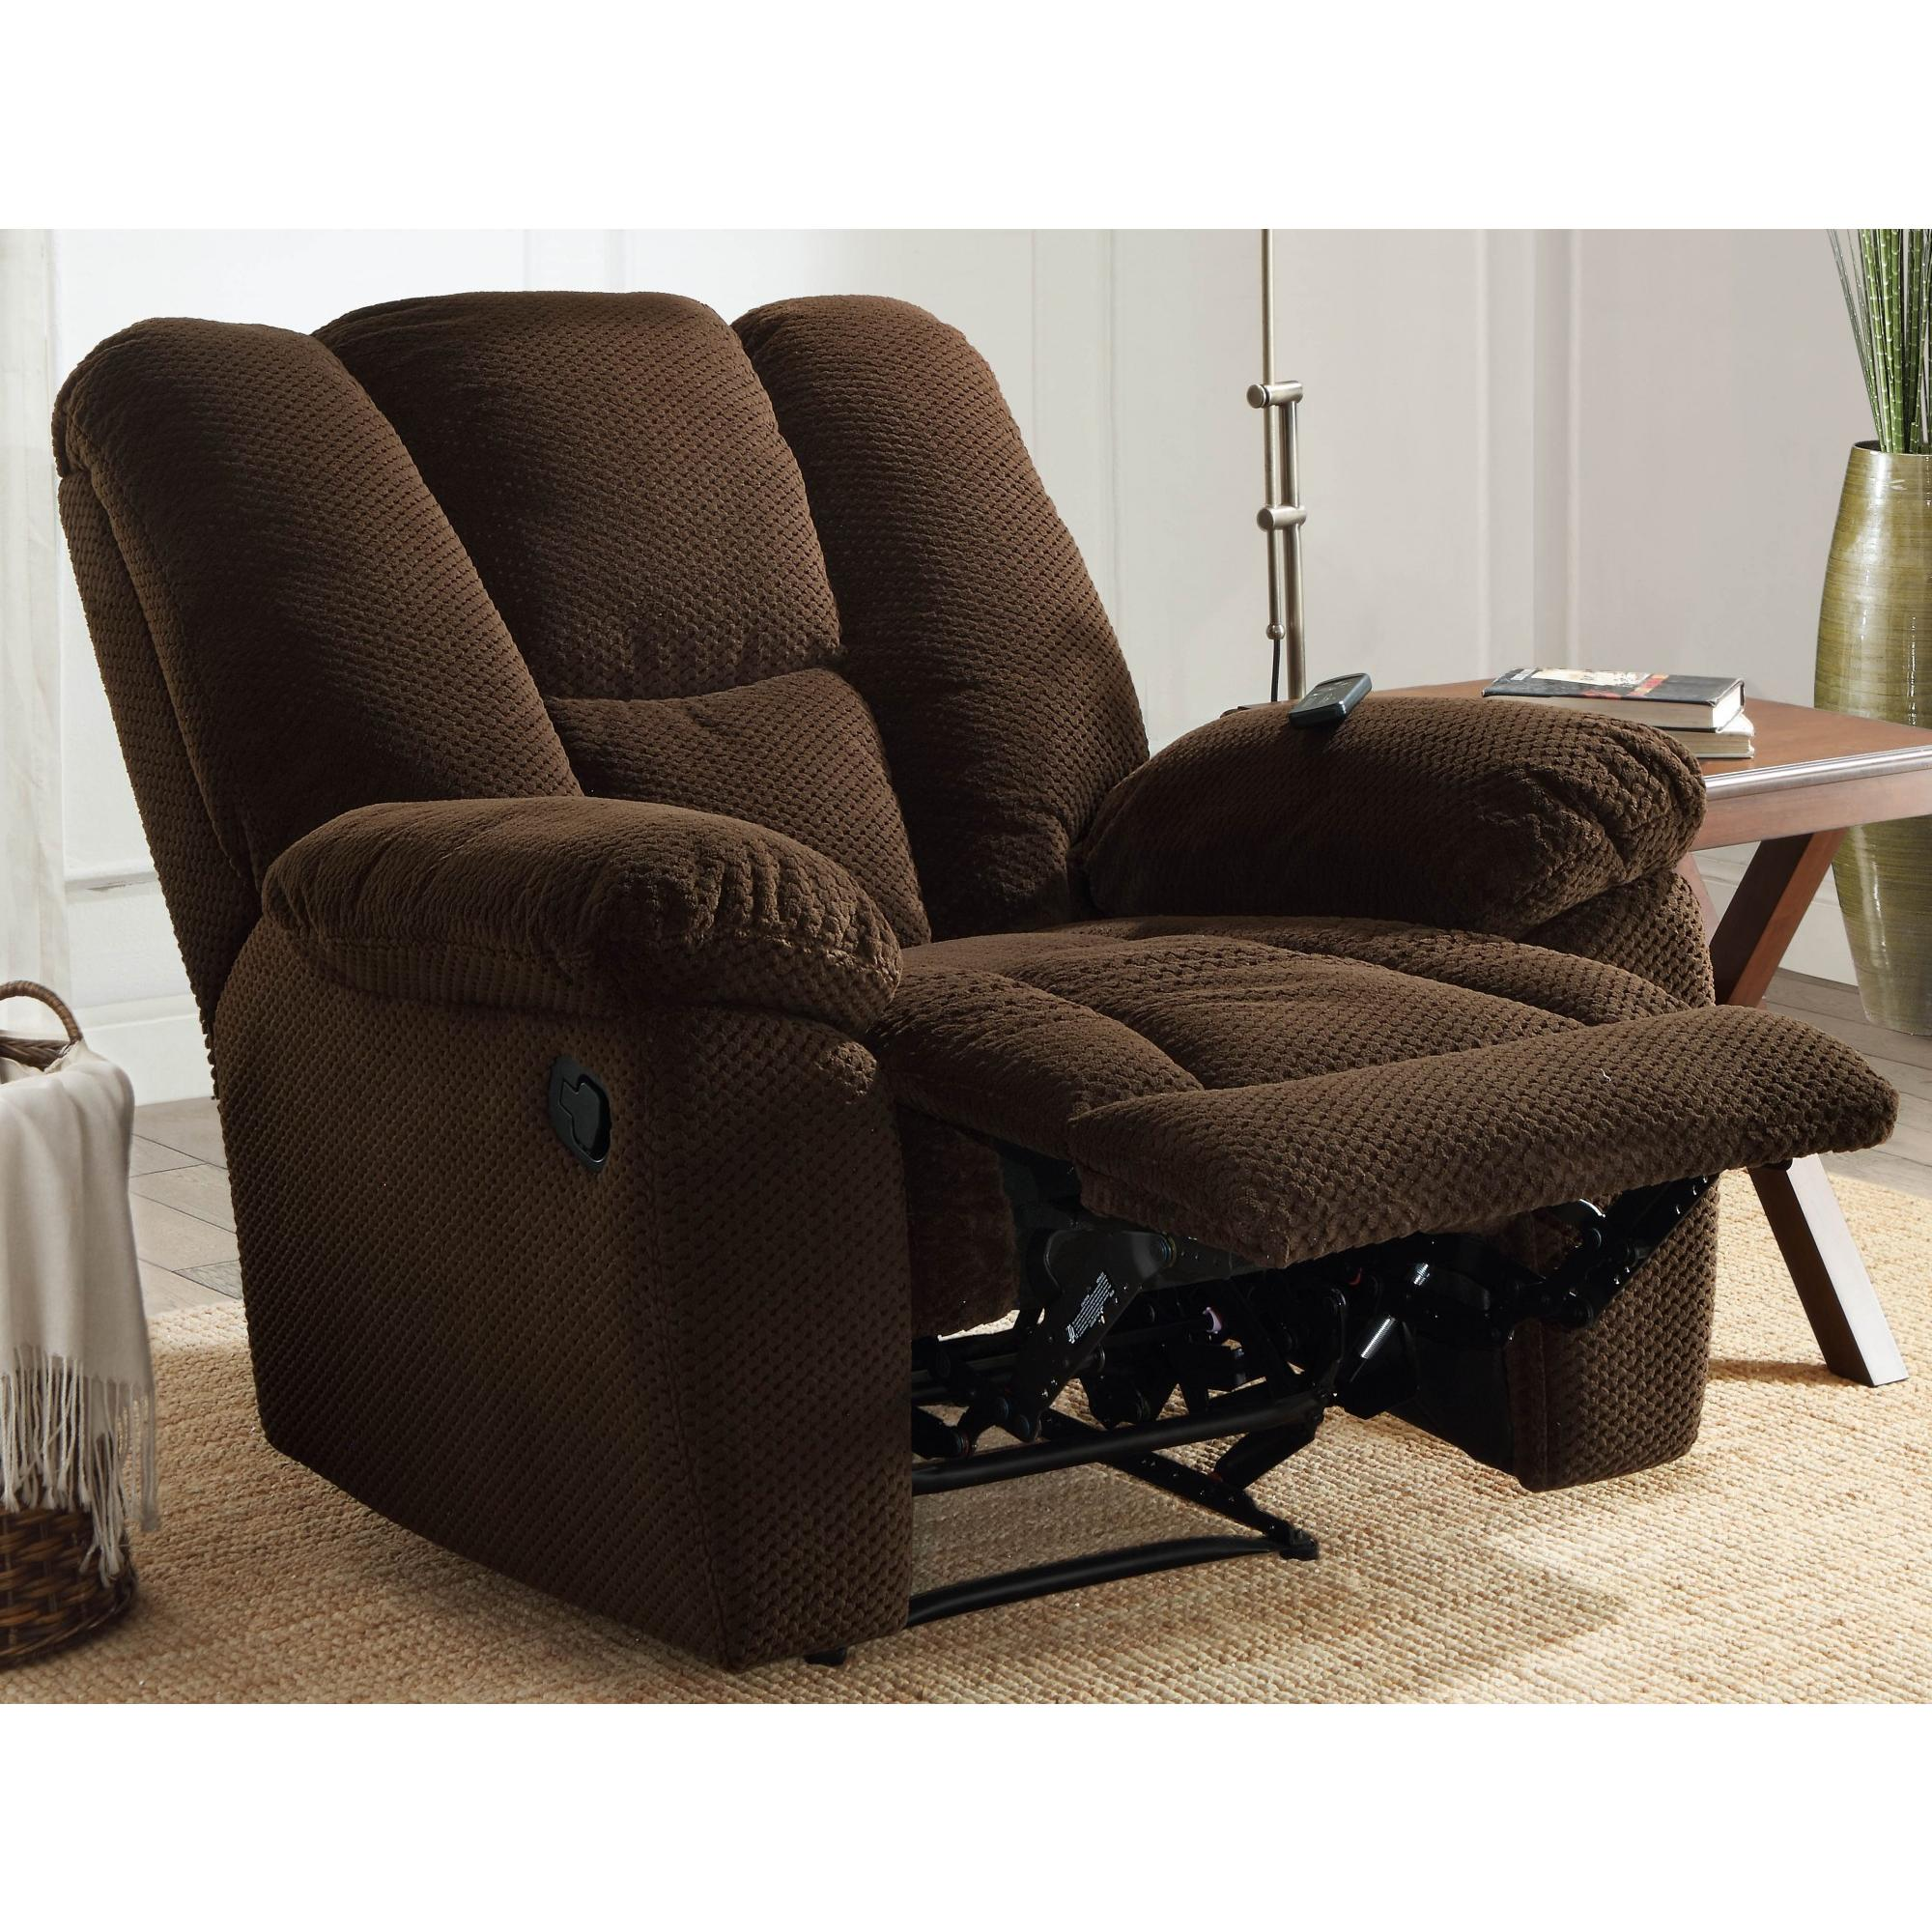 Serta Big u0026 Tall Memory Foam Massage Recliner with USB Charging Chocolate - Walmart.com  sc 1 st  Walmart & Serta Big u0026 Tall Memory Foam Massage Recliner with USB Charging ... islam-shia.org